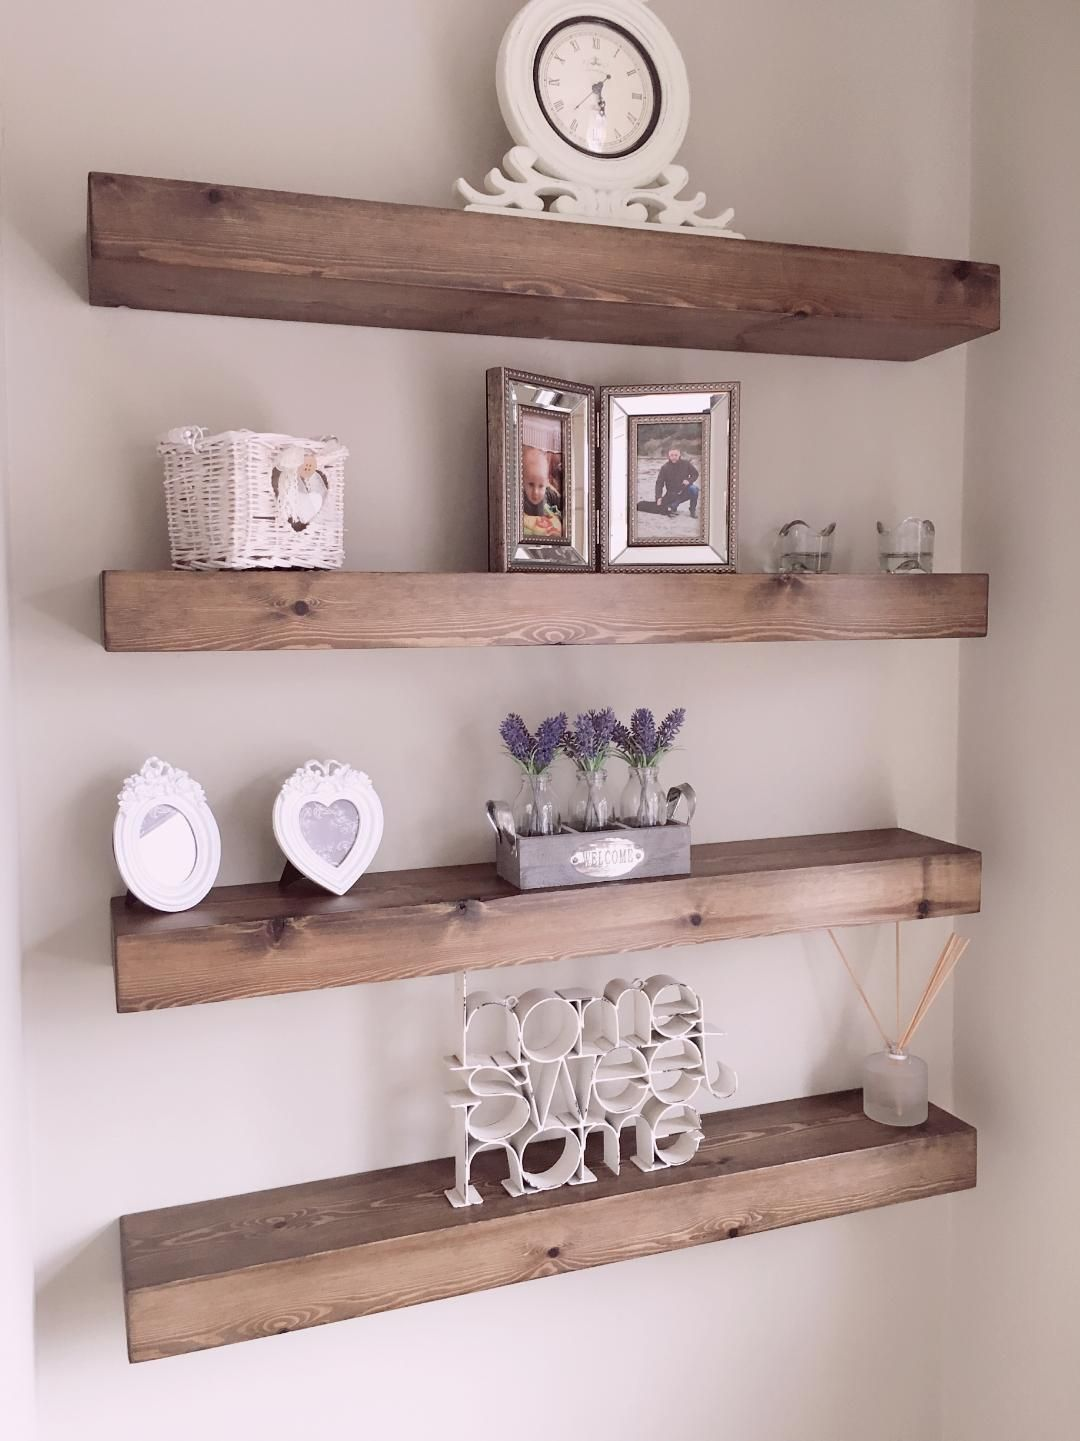 rustic chunky floating shelves finished jacobean available shelf with drawer bellerustiquework start from can purchased set coat rack cubby home loft concept zebra print bean bag